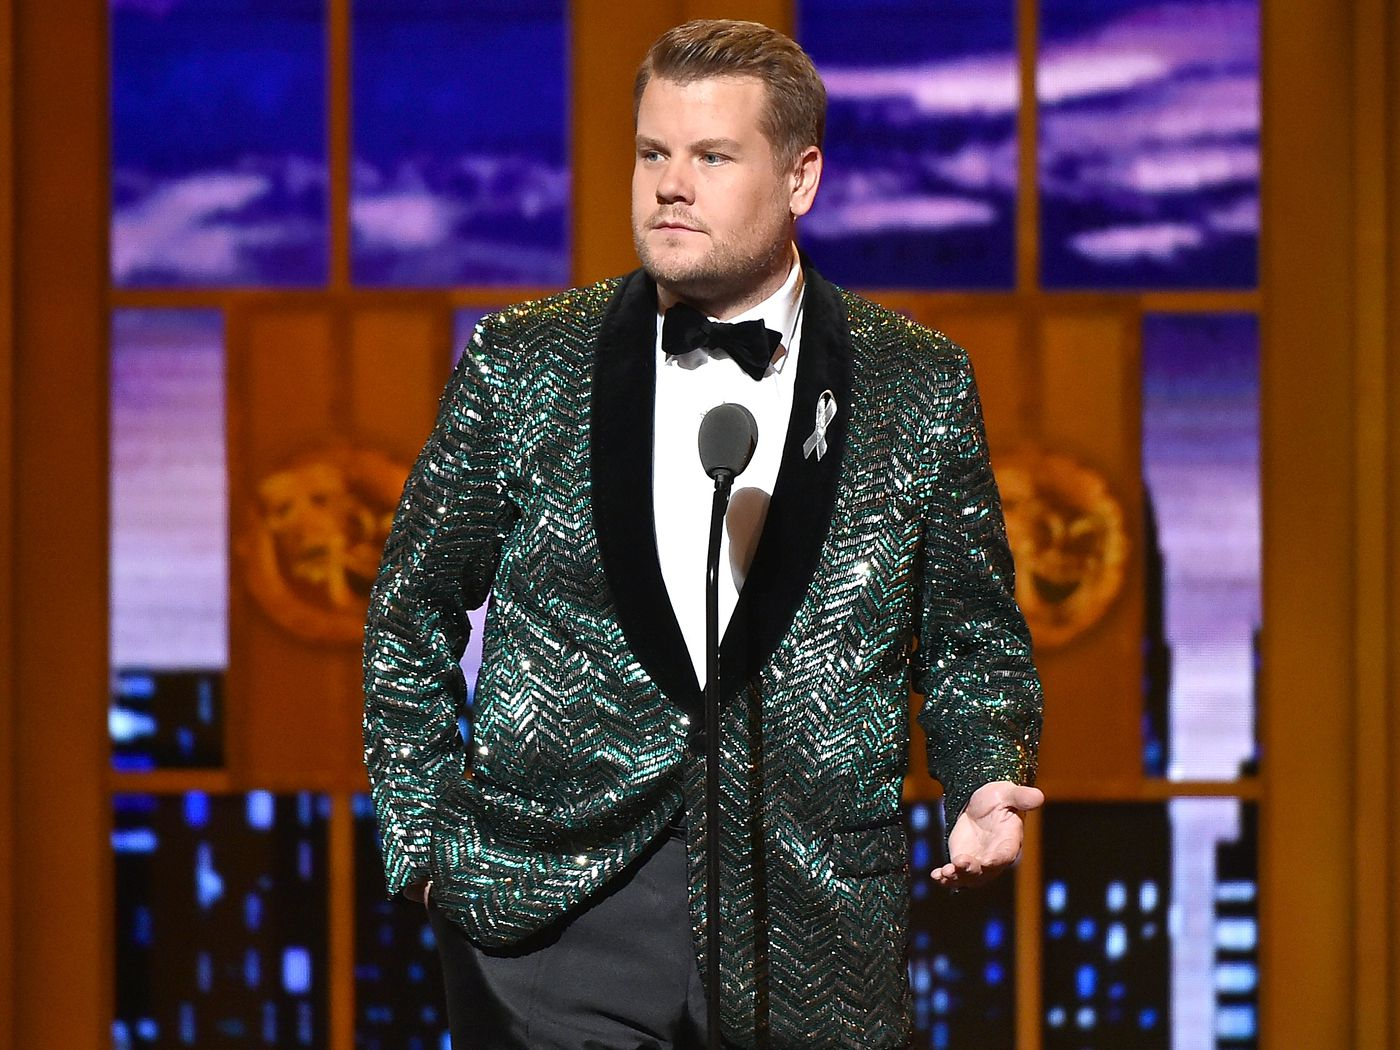 Full transcript: 'The Late Late Show' host James Corden on Recode